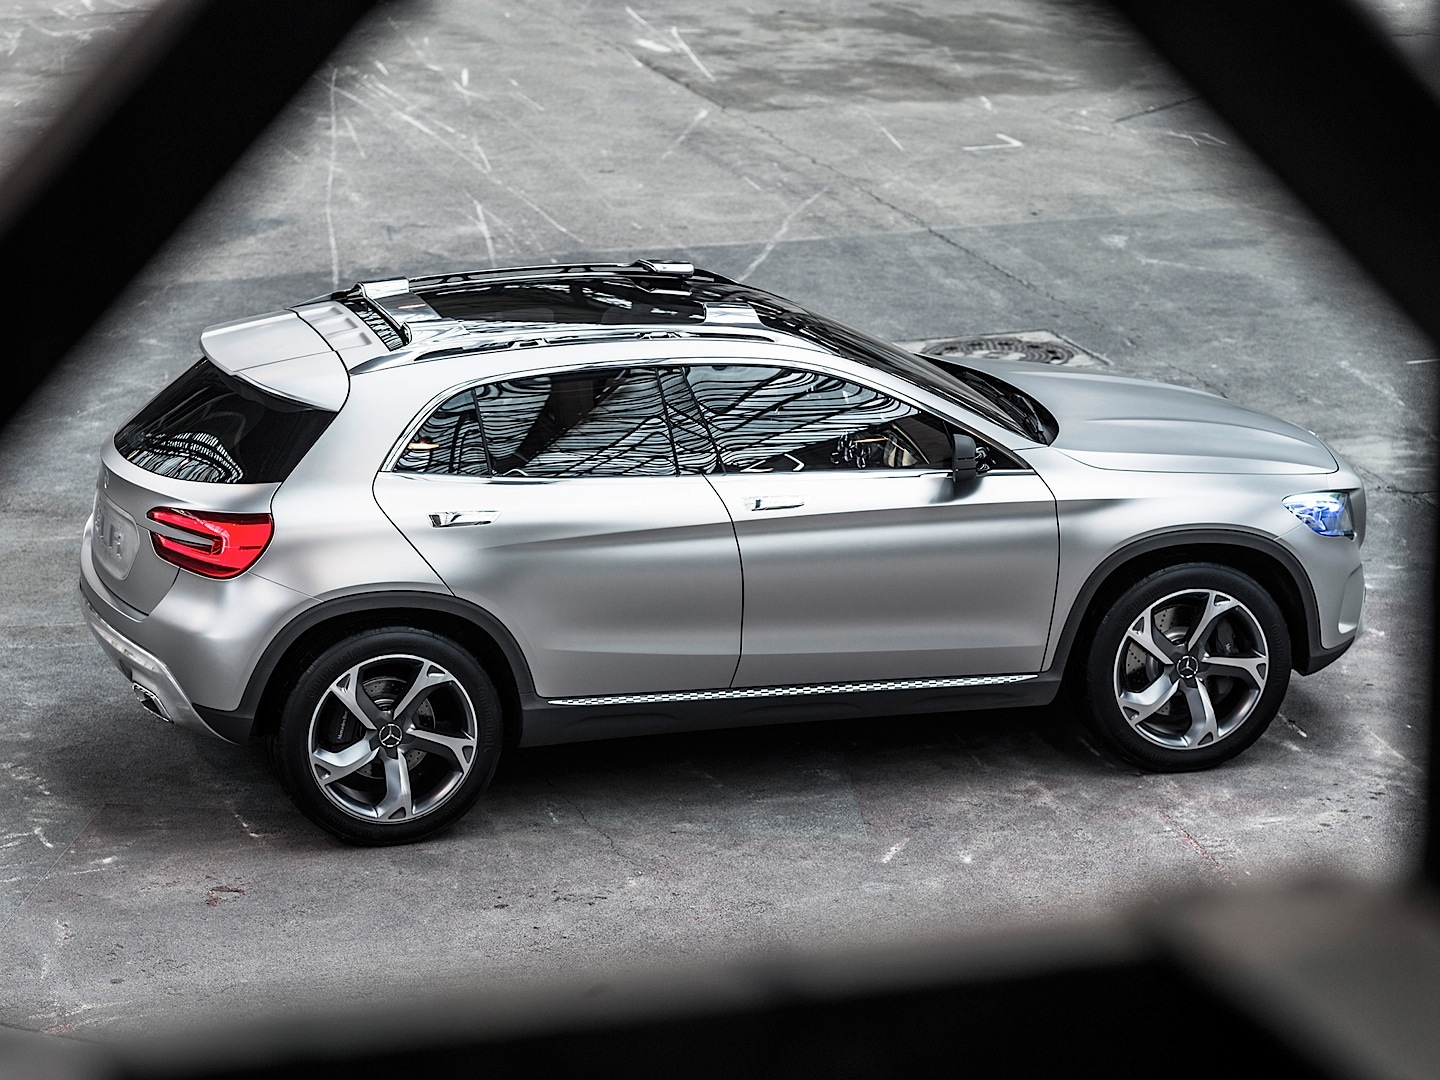 Pictures of mercedes gla #15